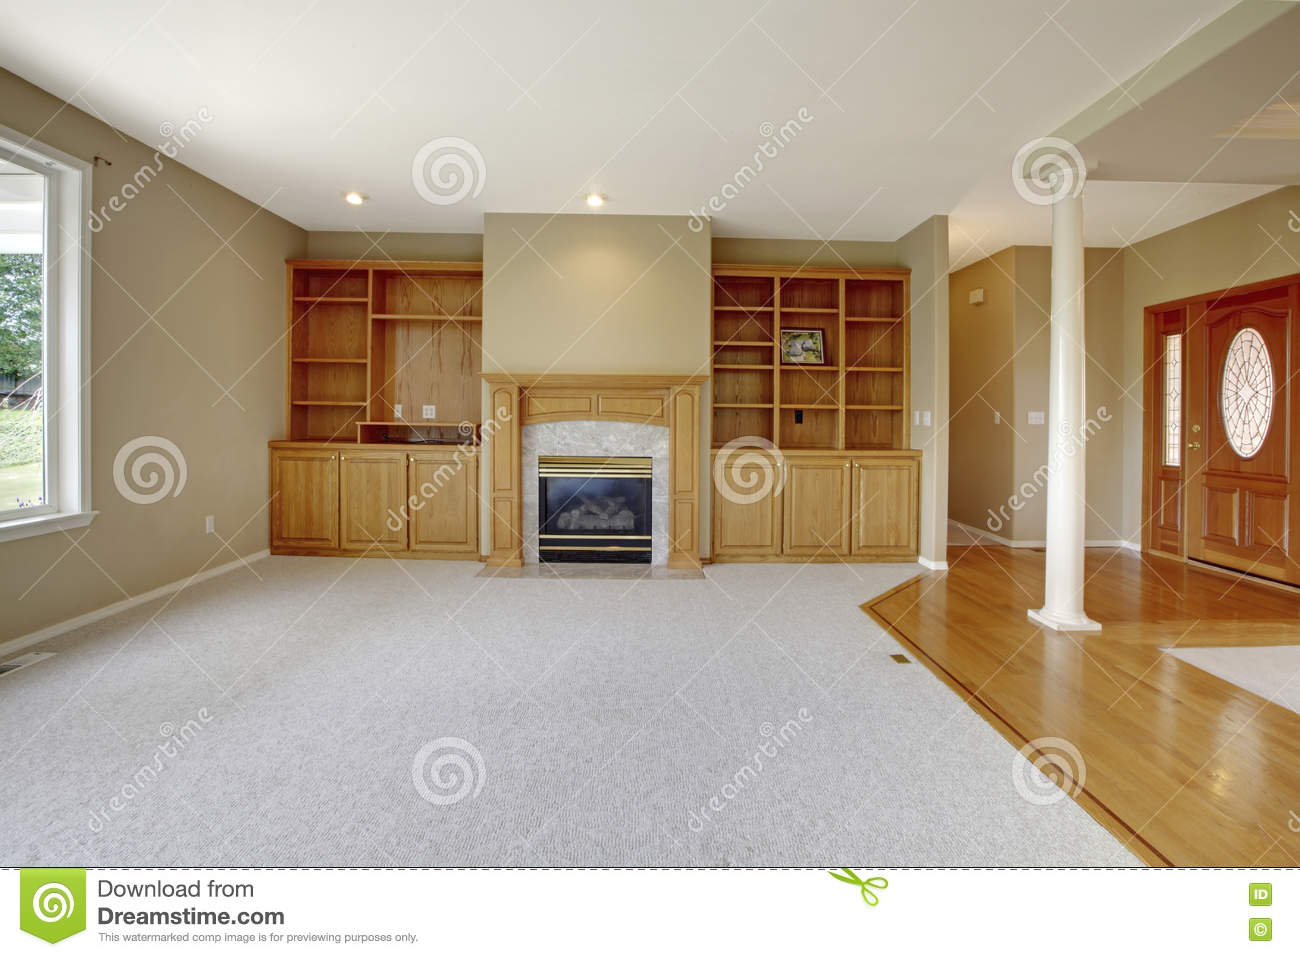 Foyer Open To Dining Room : Living room in open floor plan with foyer view and wooden entrance door stock photo image